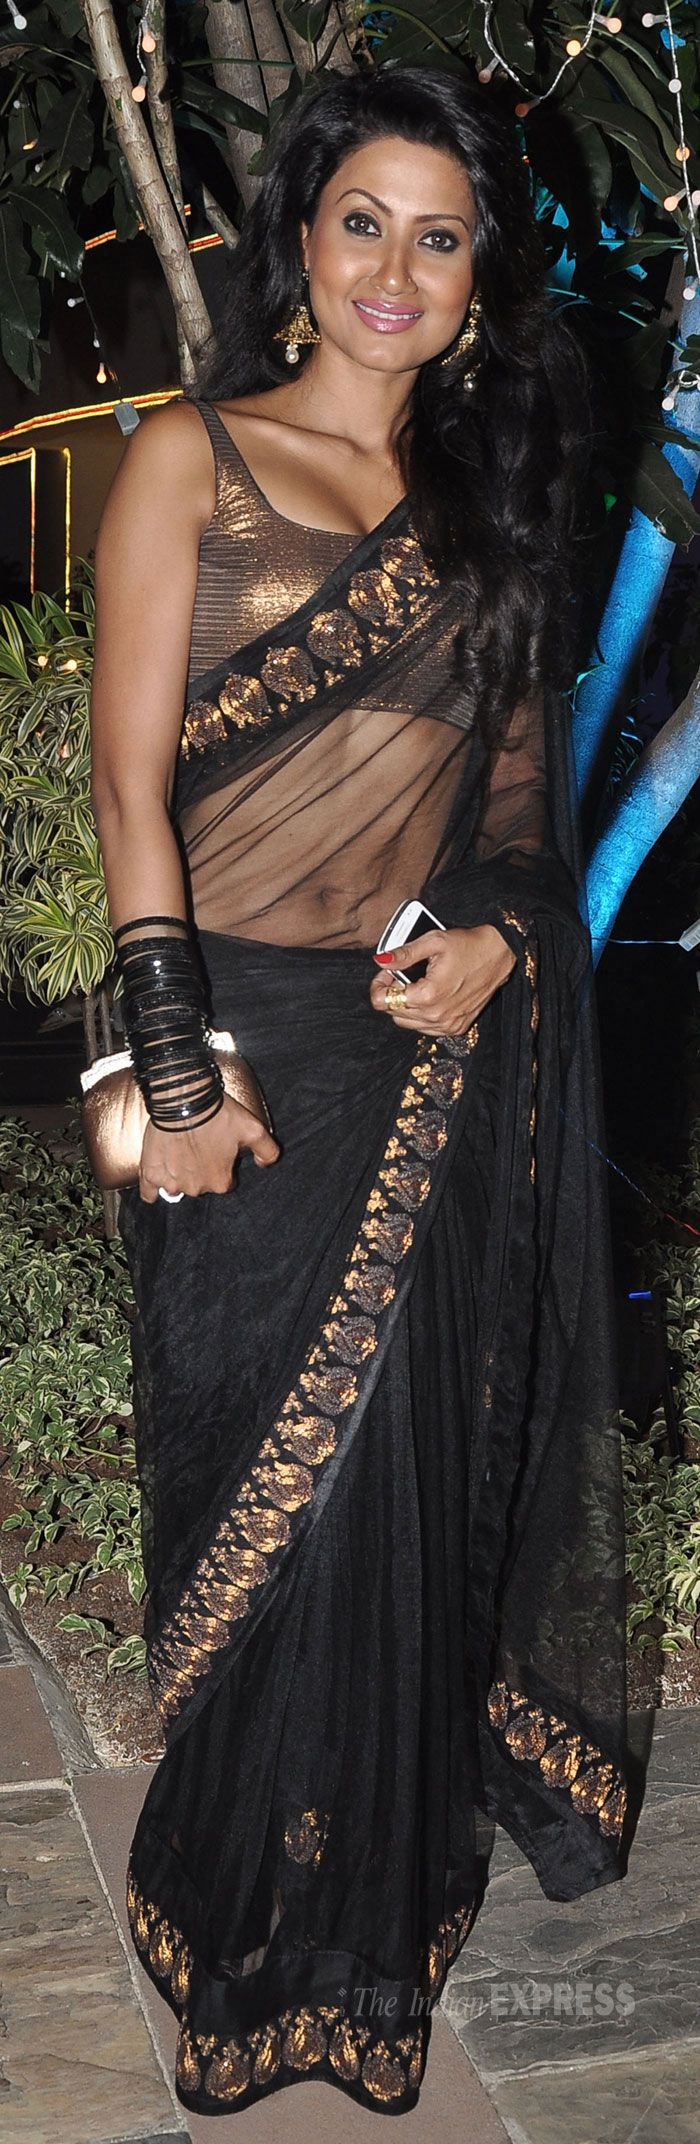 Nigaar Khan in a black and gold saree at a 2013 Diwali